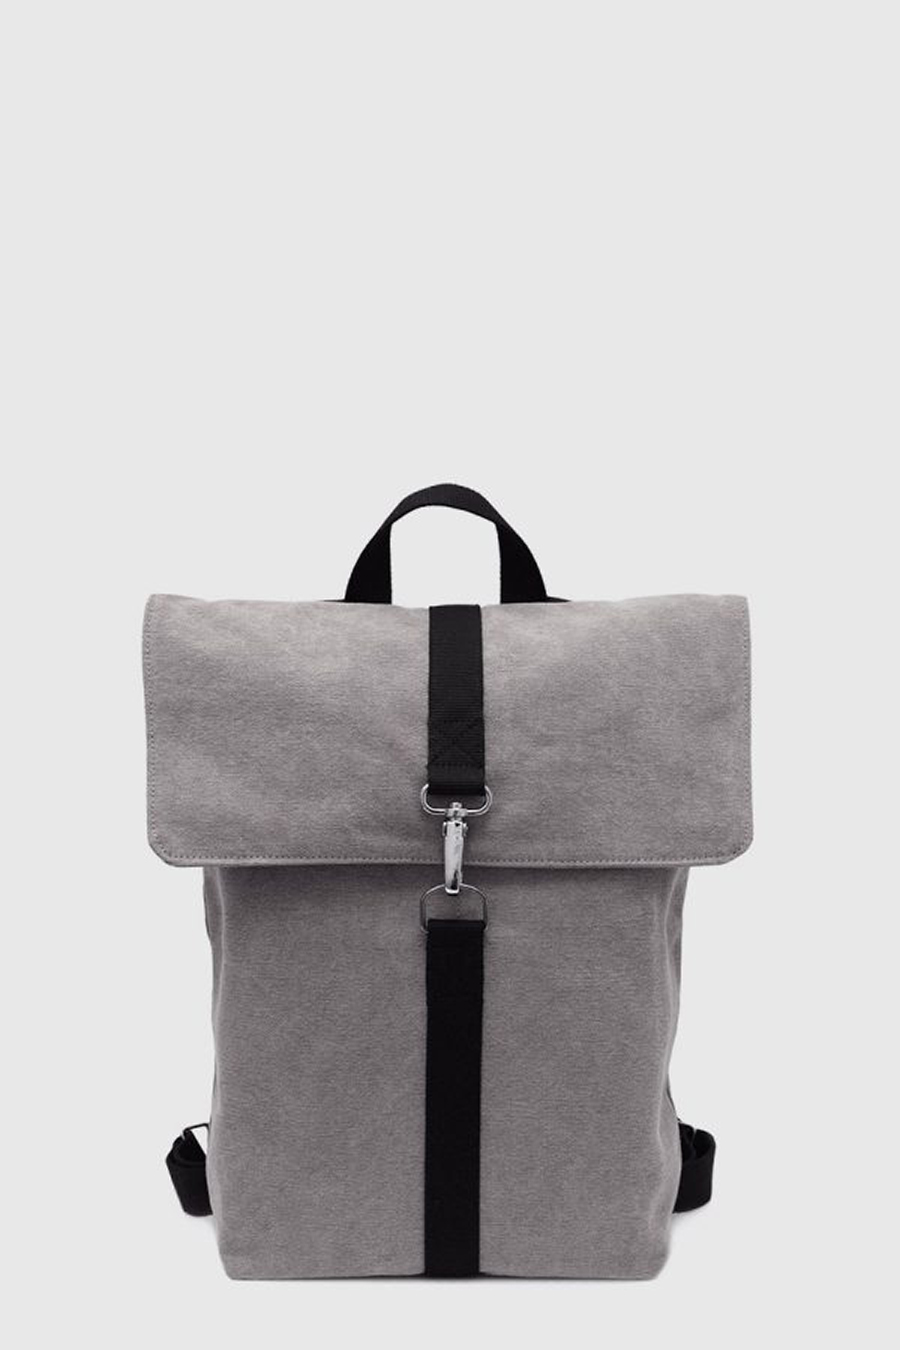 Mochila vegana impermeable color gris made in Spain